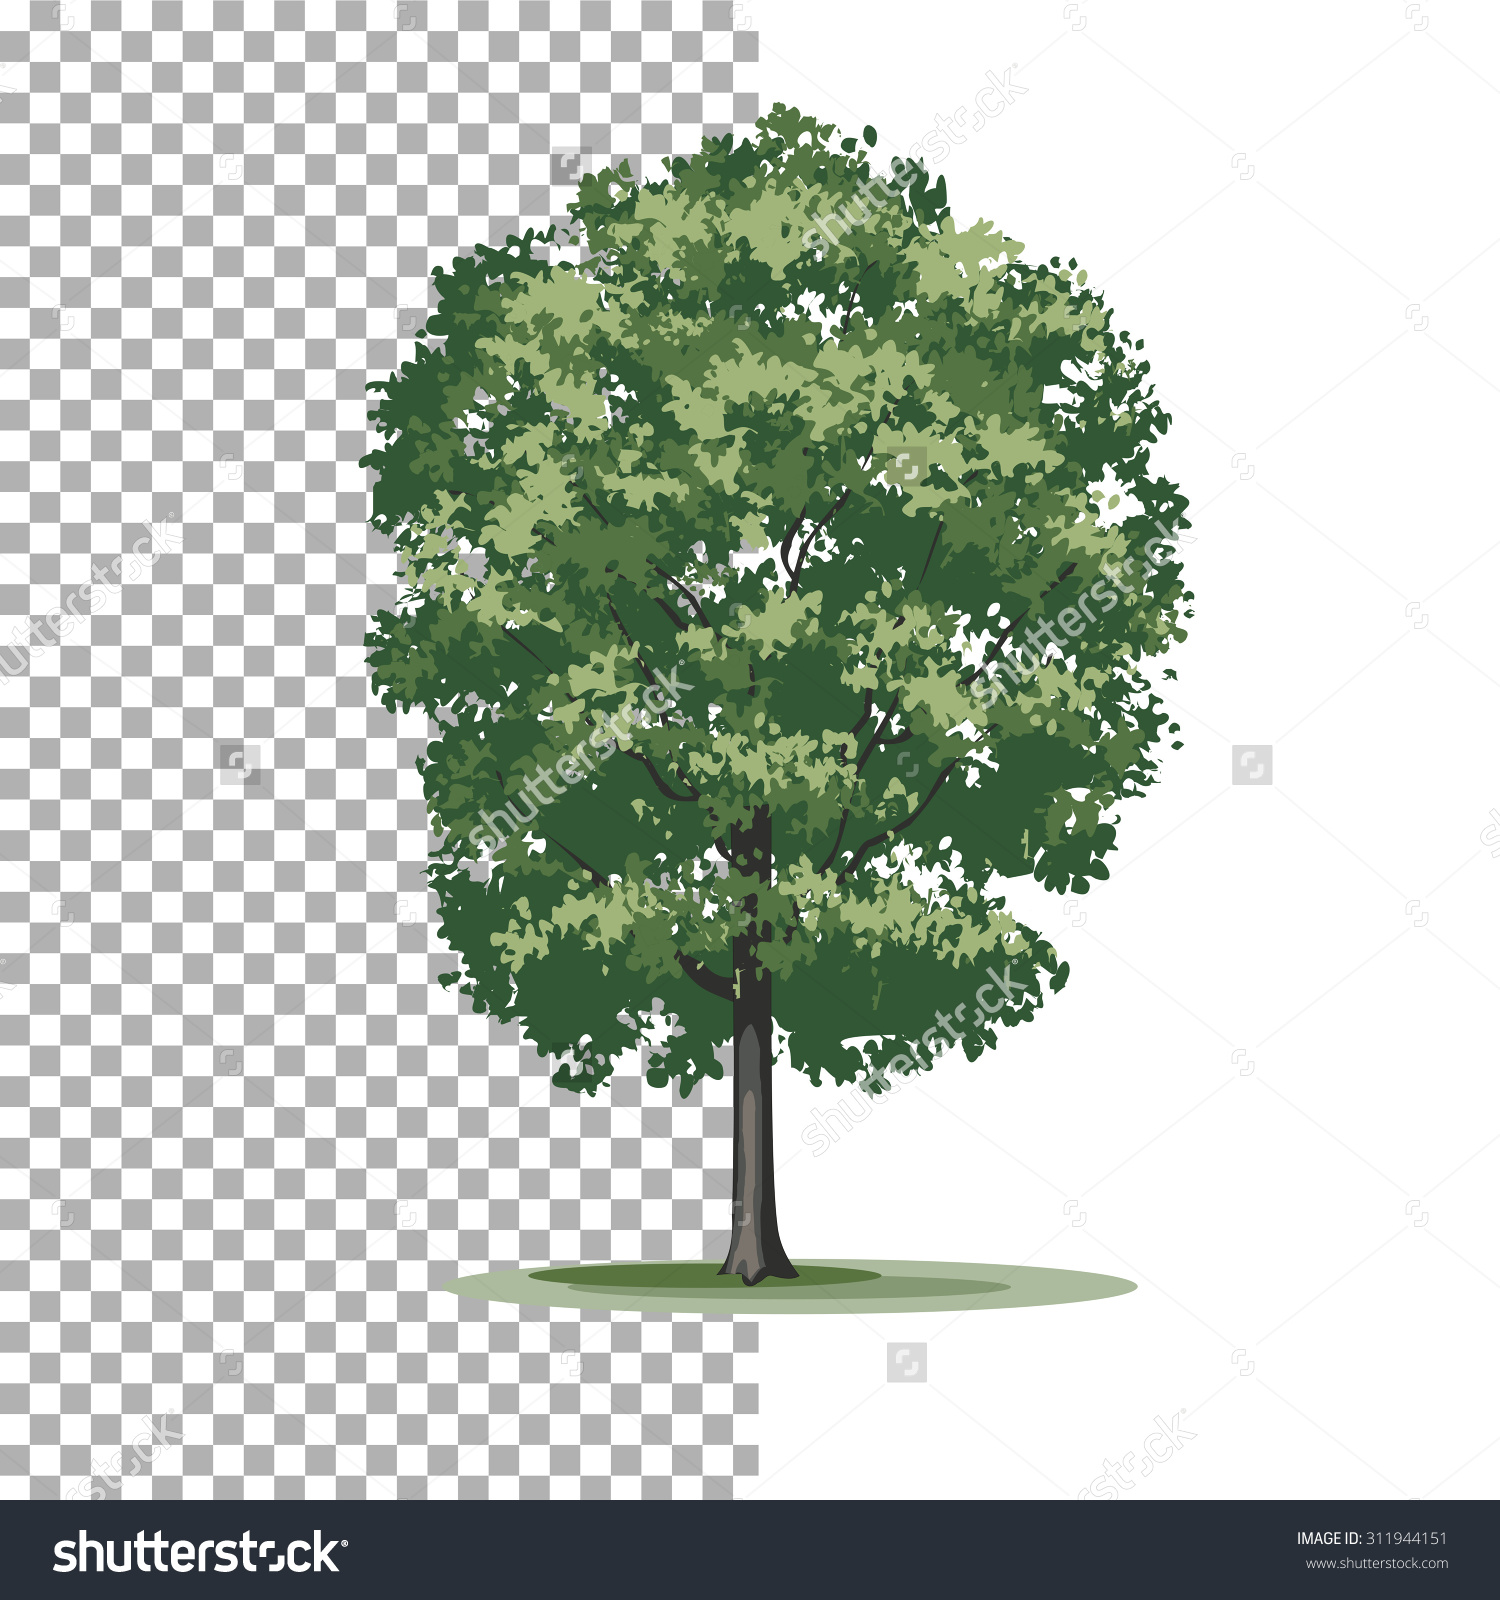 Eastern Cottonwood Tree Isolated Vector Illustration Stock Vector.